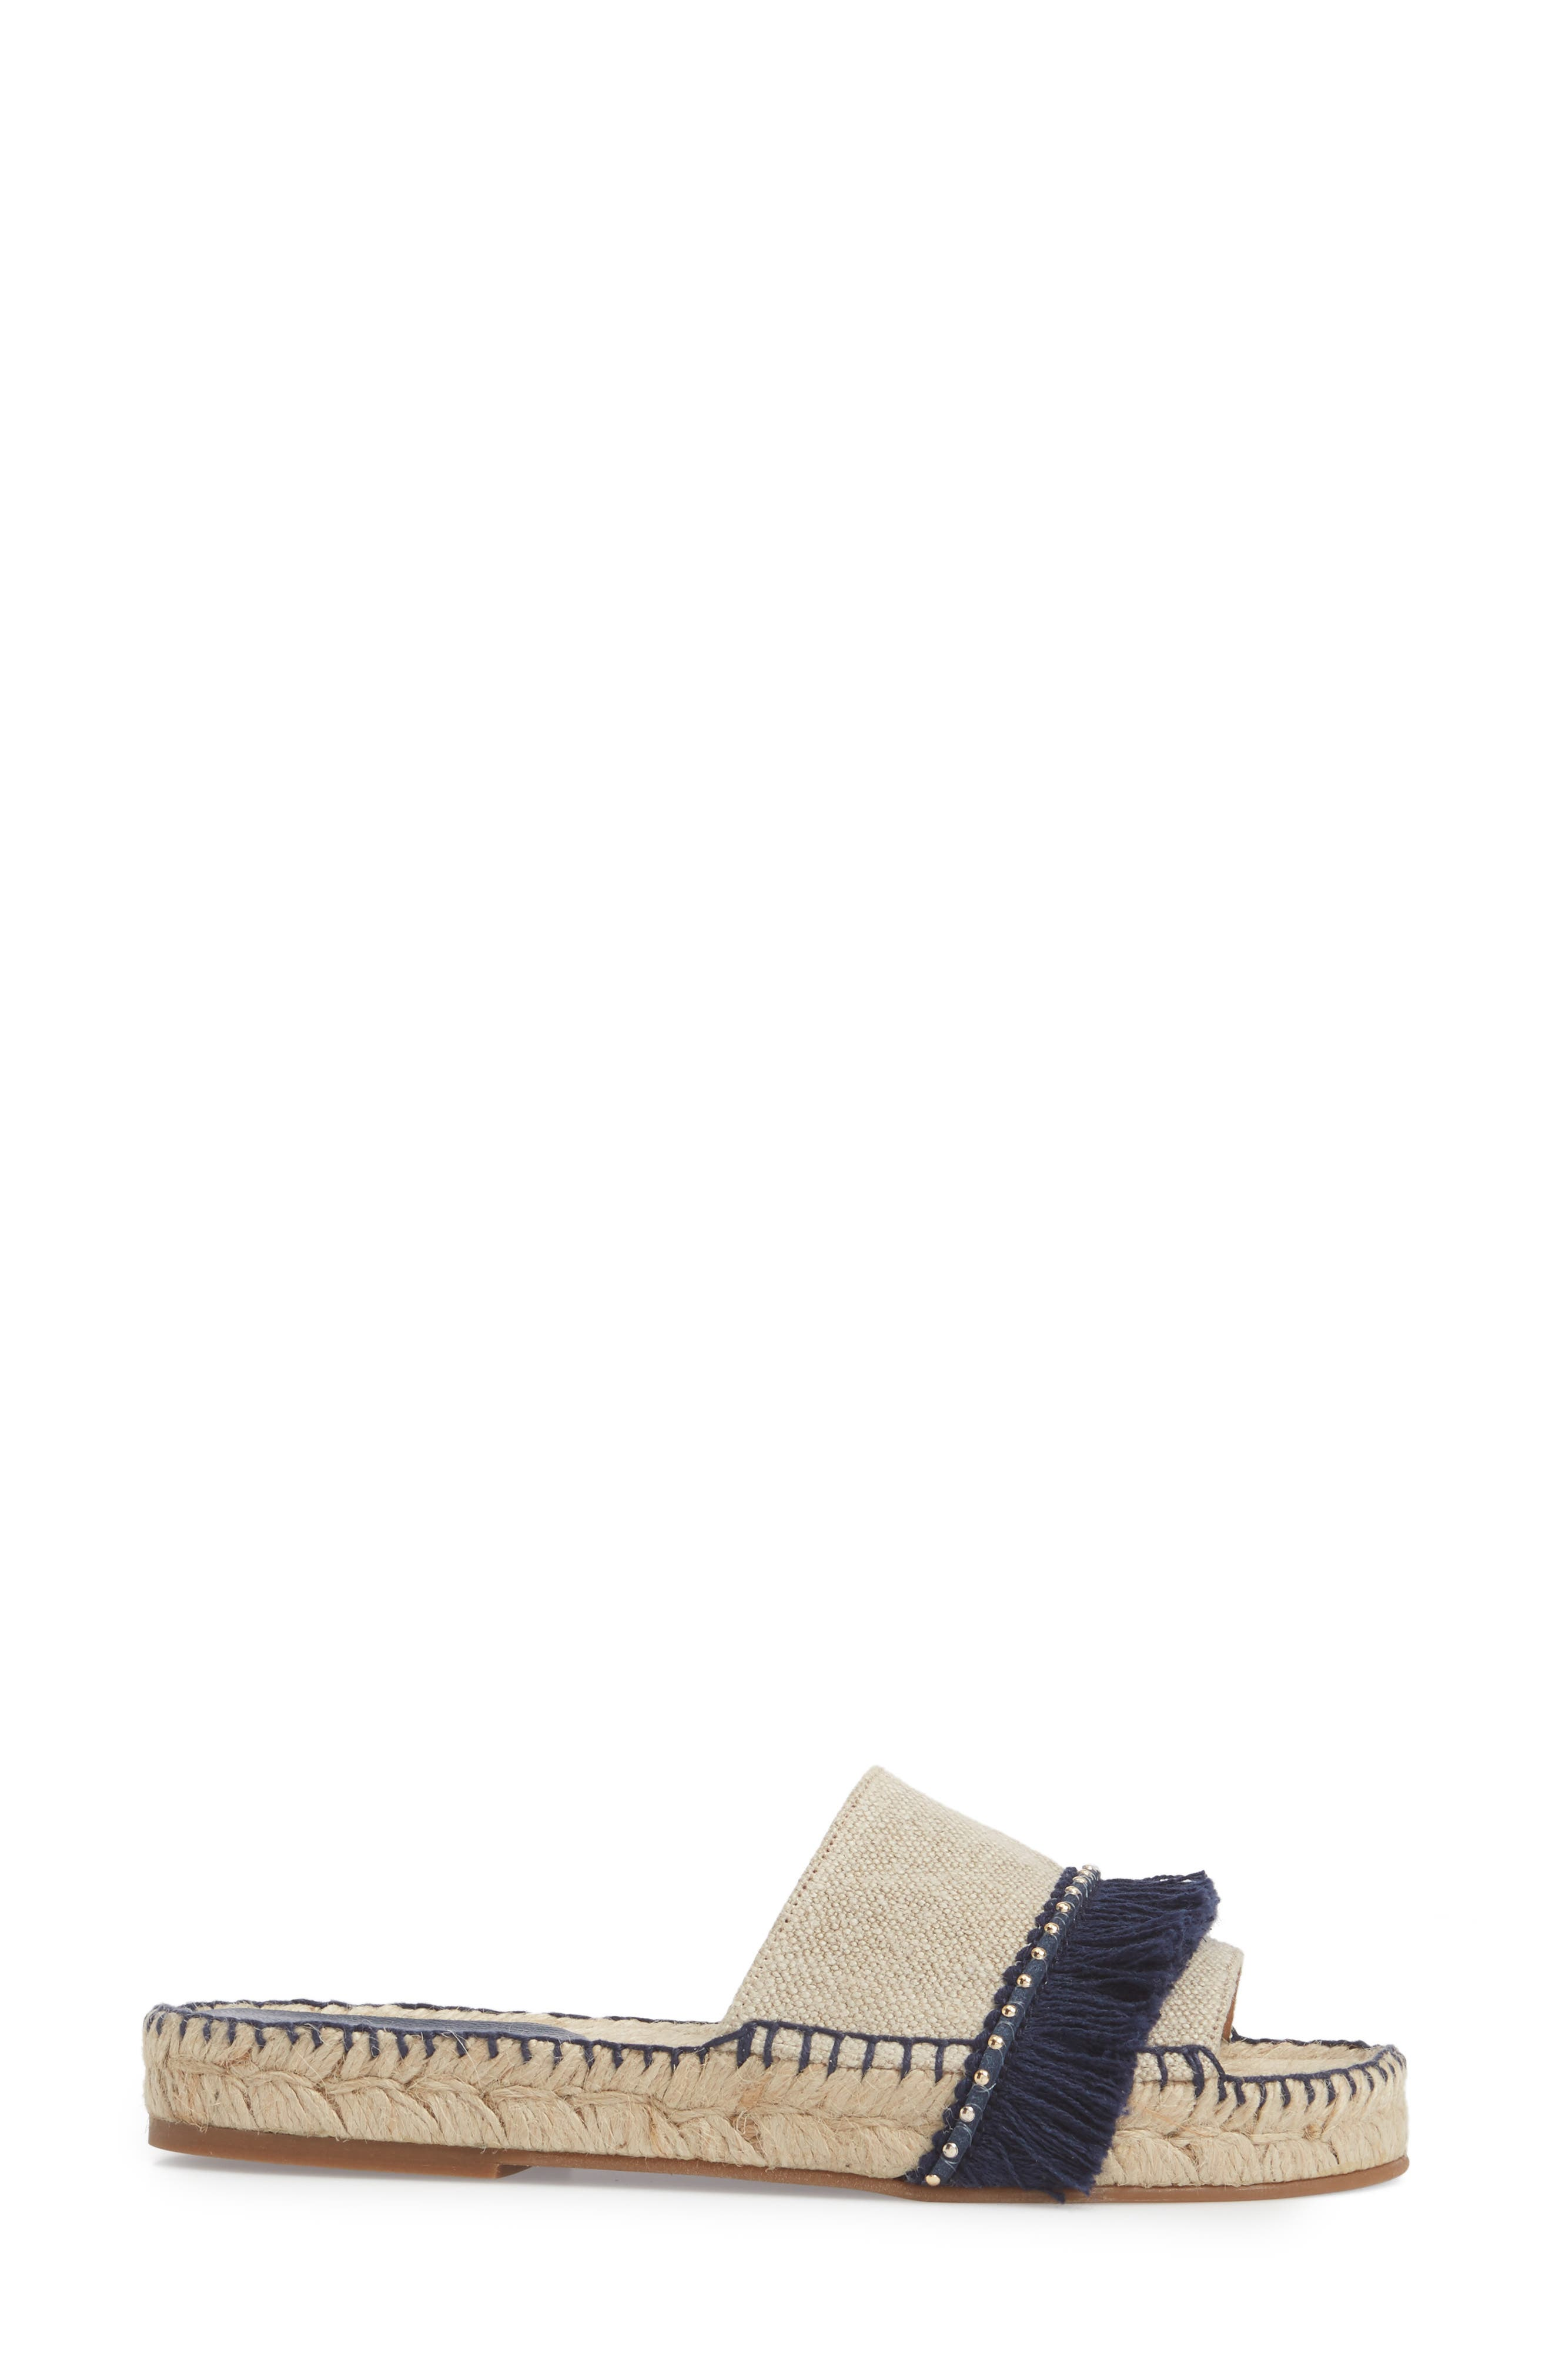 Bahama Espadrille Sandal,                             Alternate thumbnail 3, color,                             Navy Leather